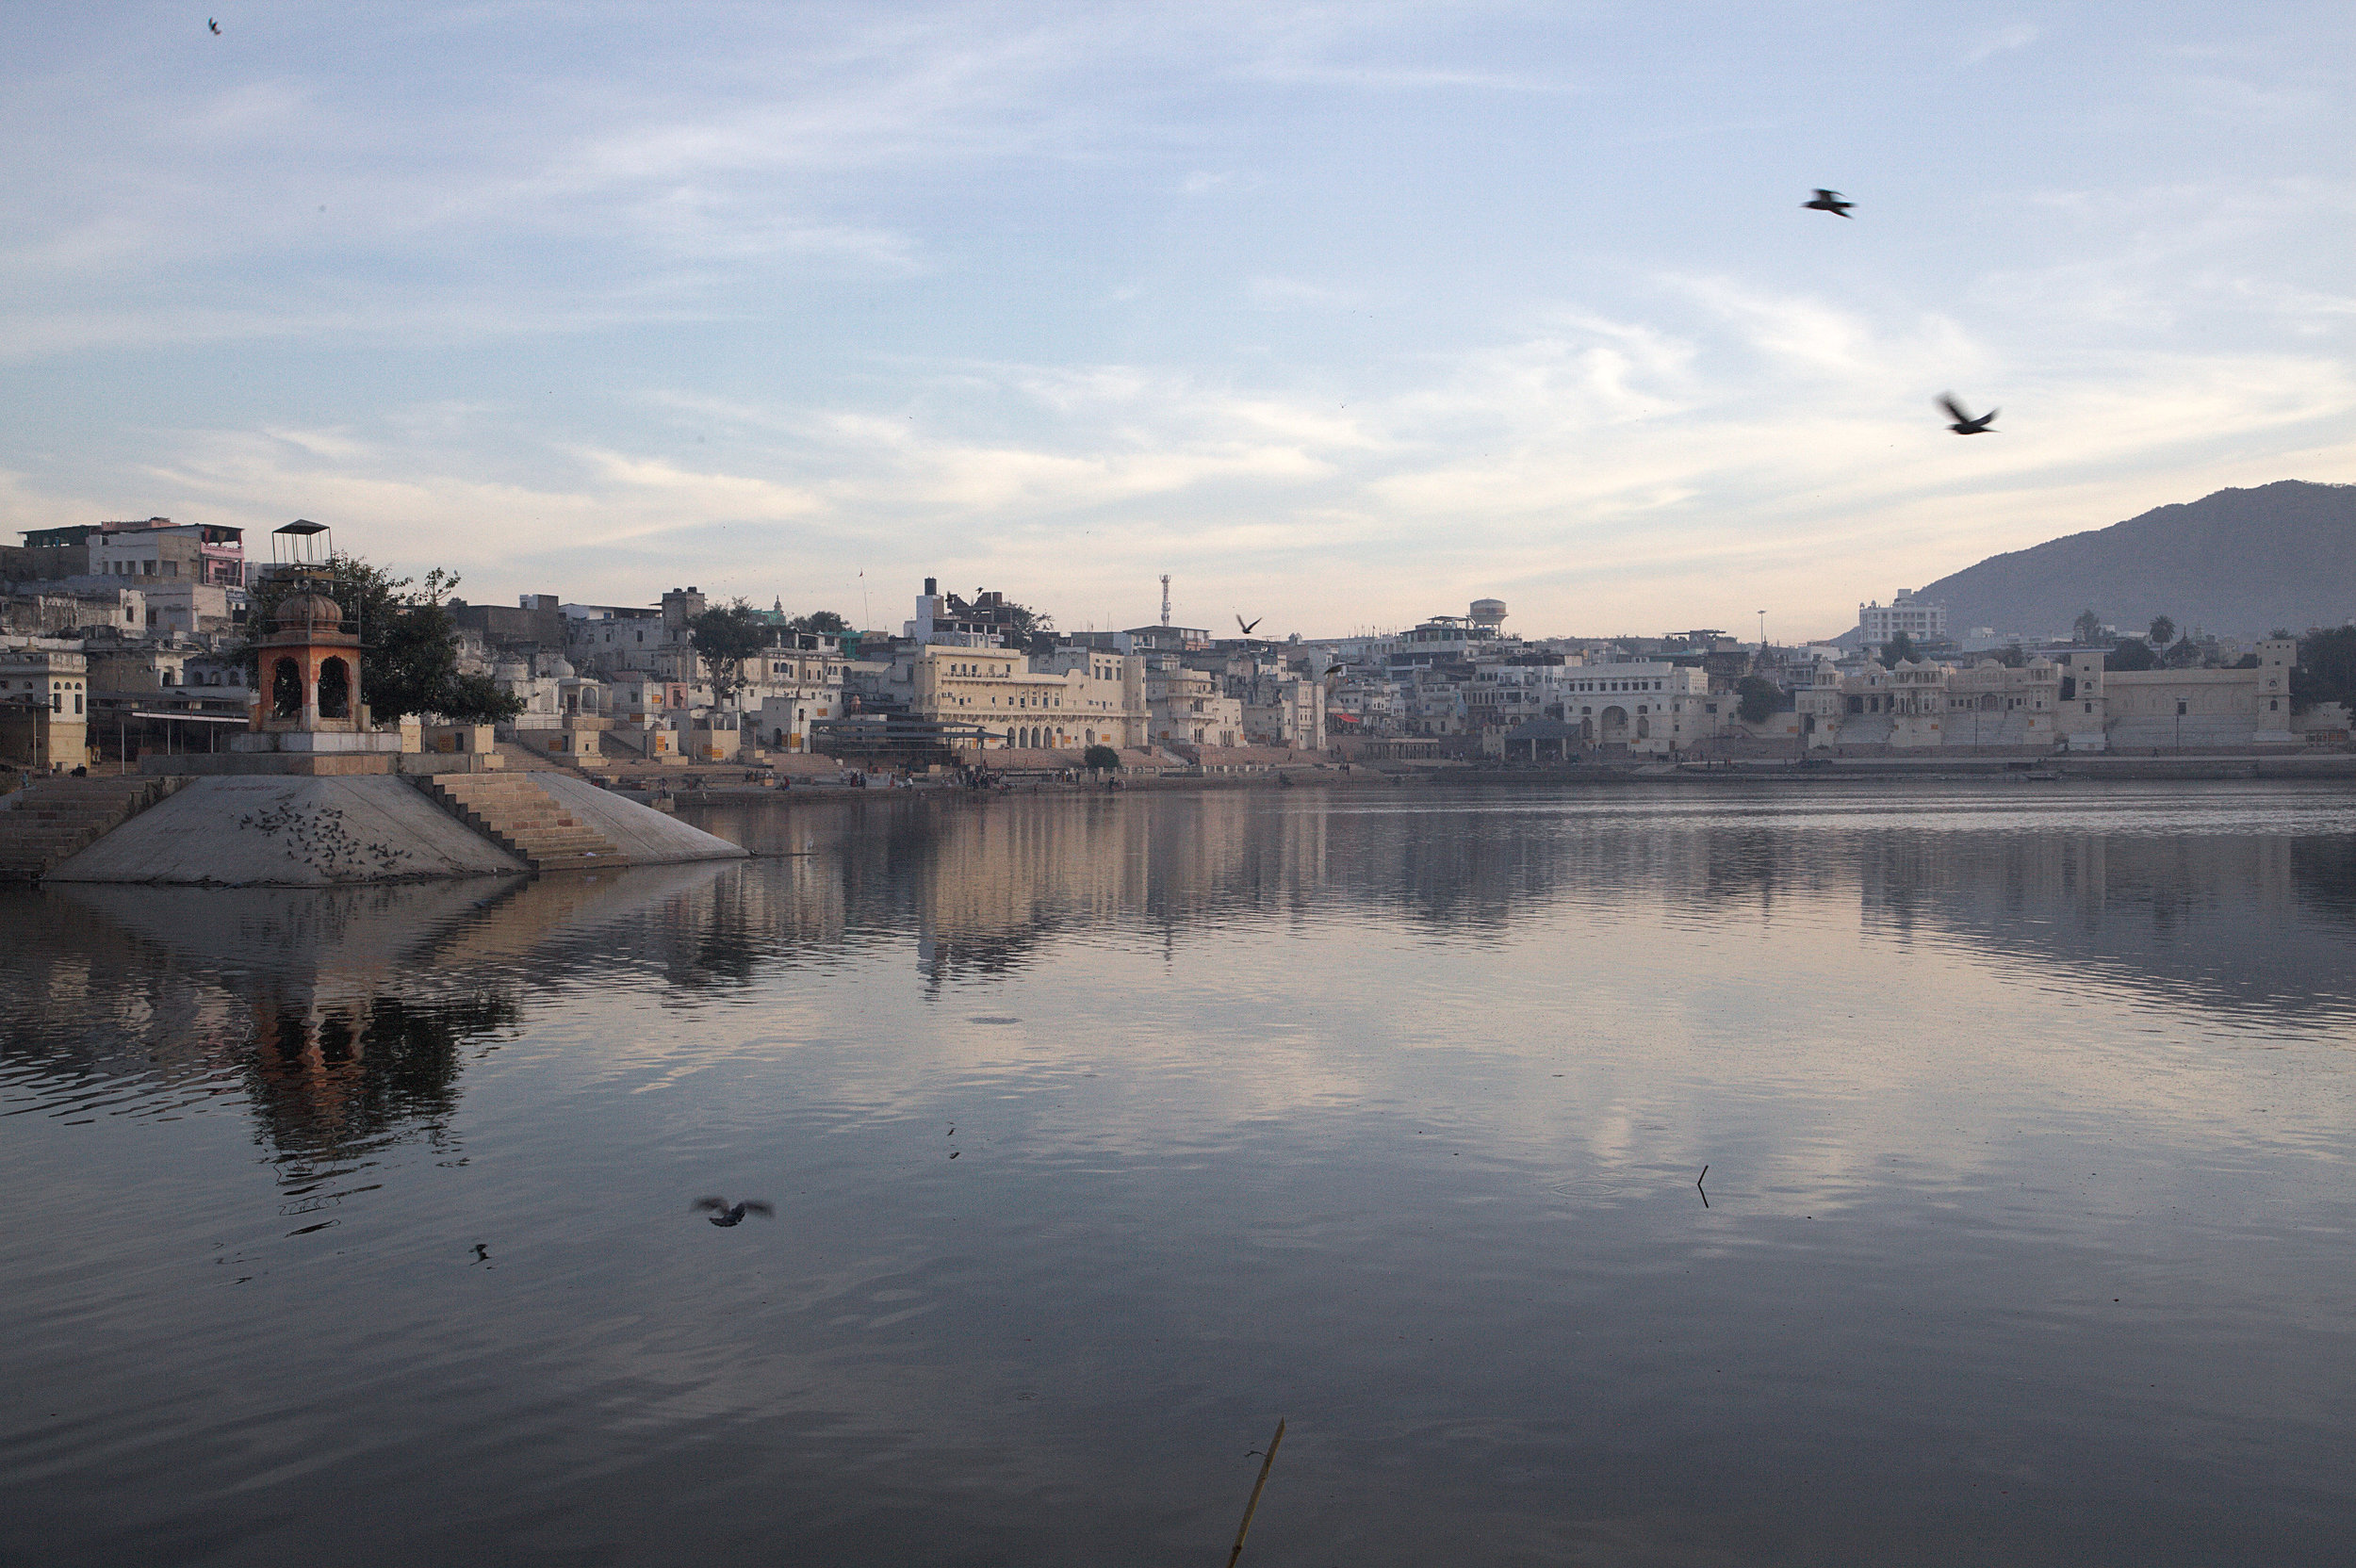 Pushkar Lake in Rajasthan. It was created when Brahma slew a demon with a lotus flower. Where the lotus petals fell three lakes appeared and Pushkar is the largest.